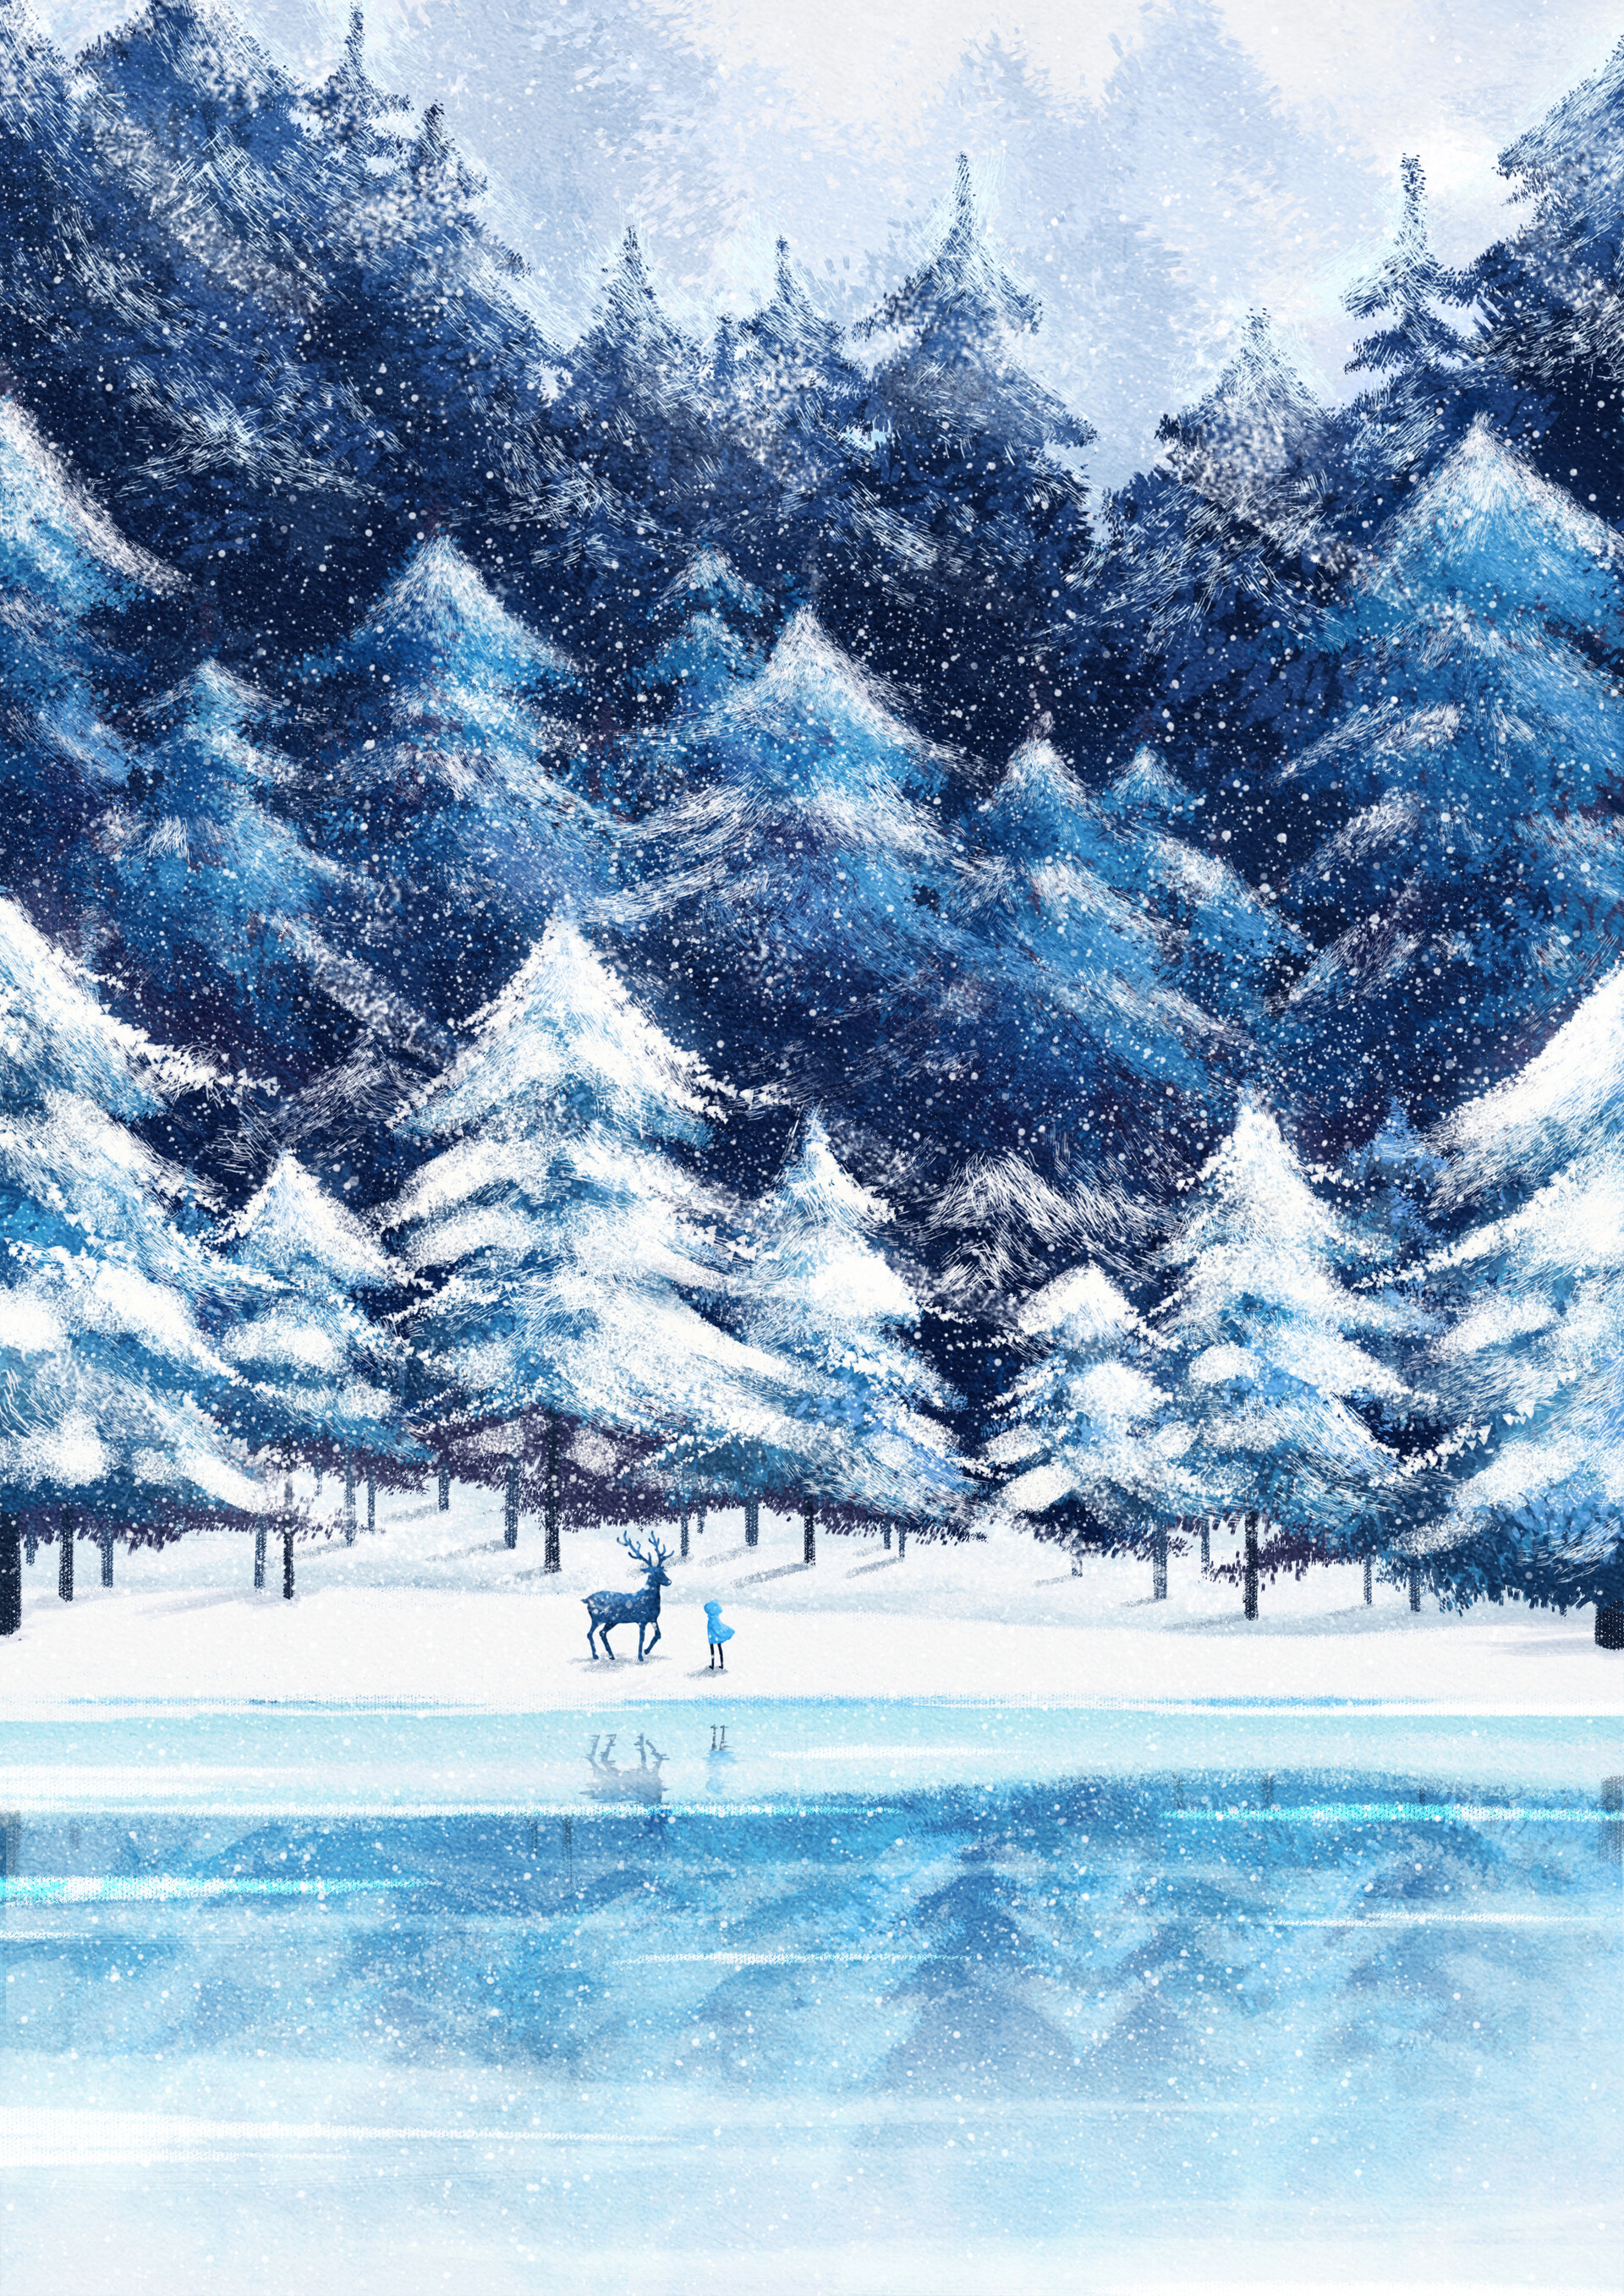 97761 download wallpaper Art, Forest, Deer, Silhouette, Snow, Winter screensavers and pictures for free